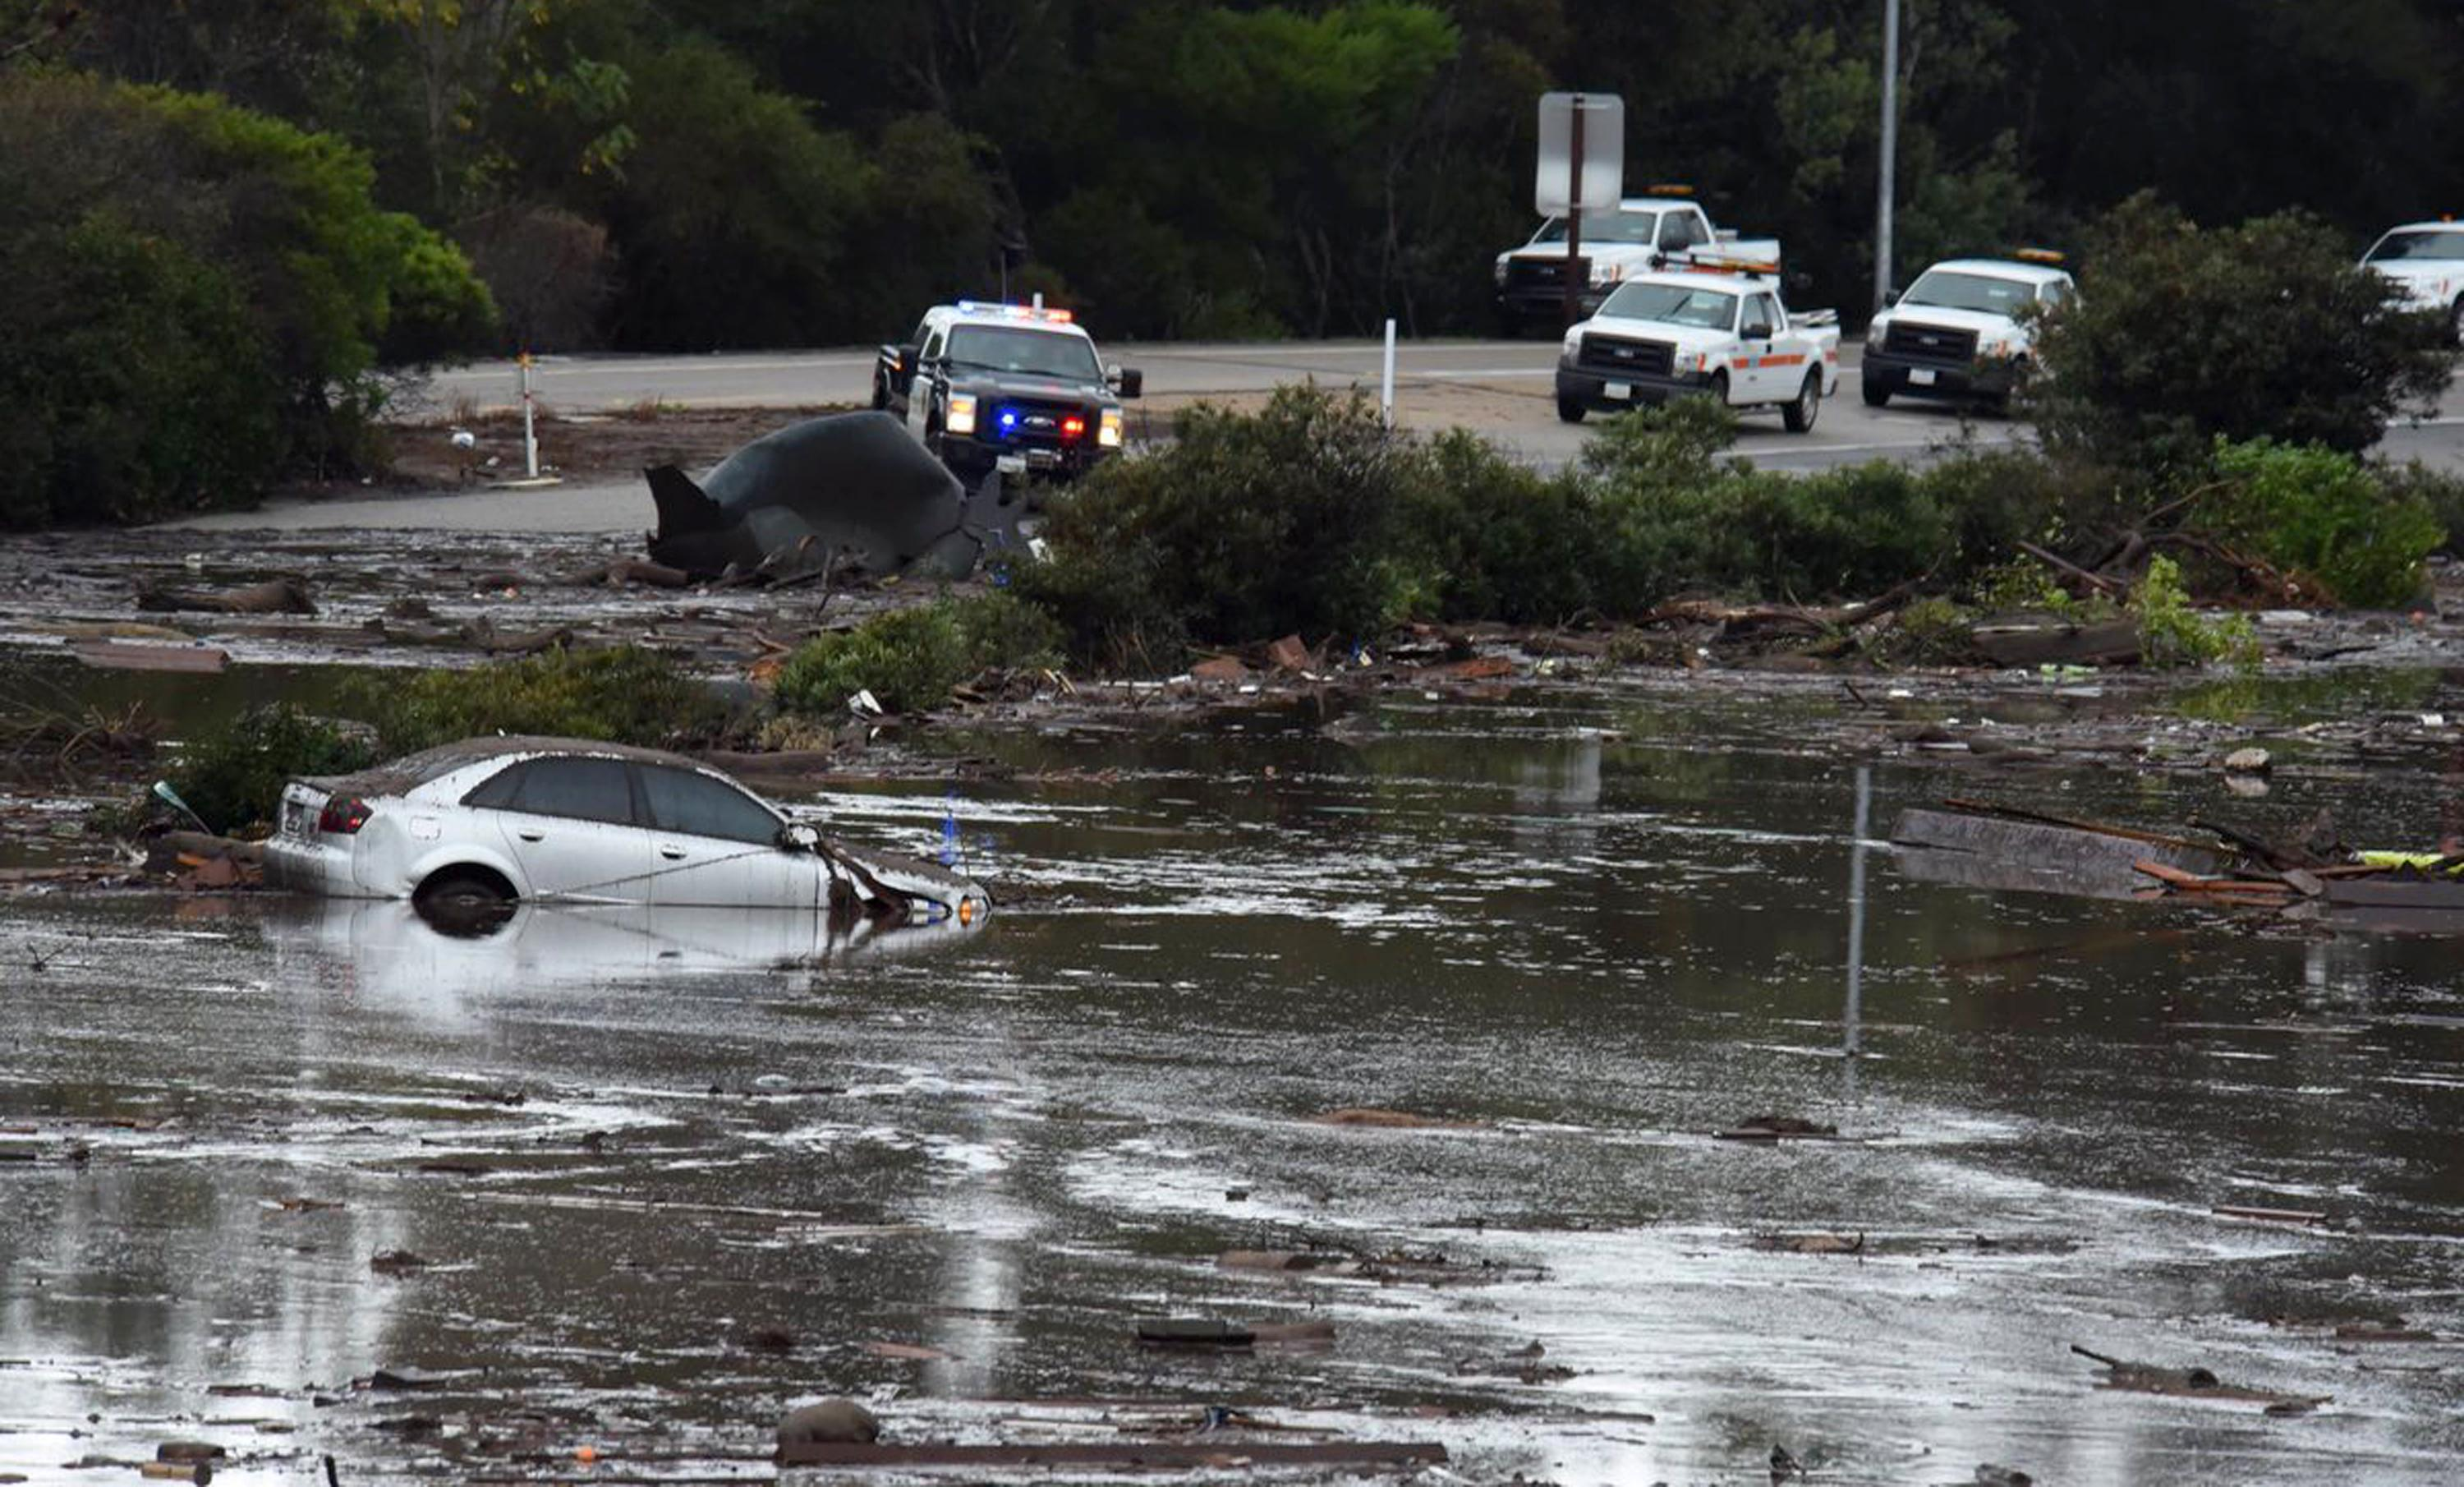 This photo provided by the Santa Barbara County Fire Department shows the U.S. Highway 101 at the Olive Mill Road overpass flooded with runoff water from Montecito Creek in Montecito, Calif., Tuesday, Jan. 9, 2018. Dozens of homes were swept away or heavily damaged Tuesday as downpours sent mud and boulders roaring down hills stripped of vegetation by a gigantic wildfire that raged in Southern California last month. (Mike Eliason/Santa Barbara County Fire Department via AP)